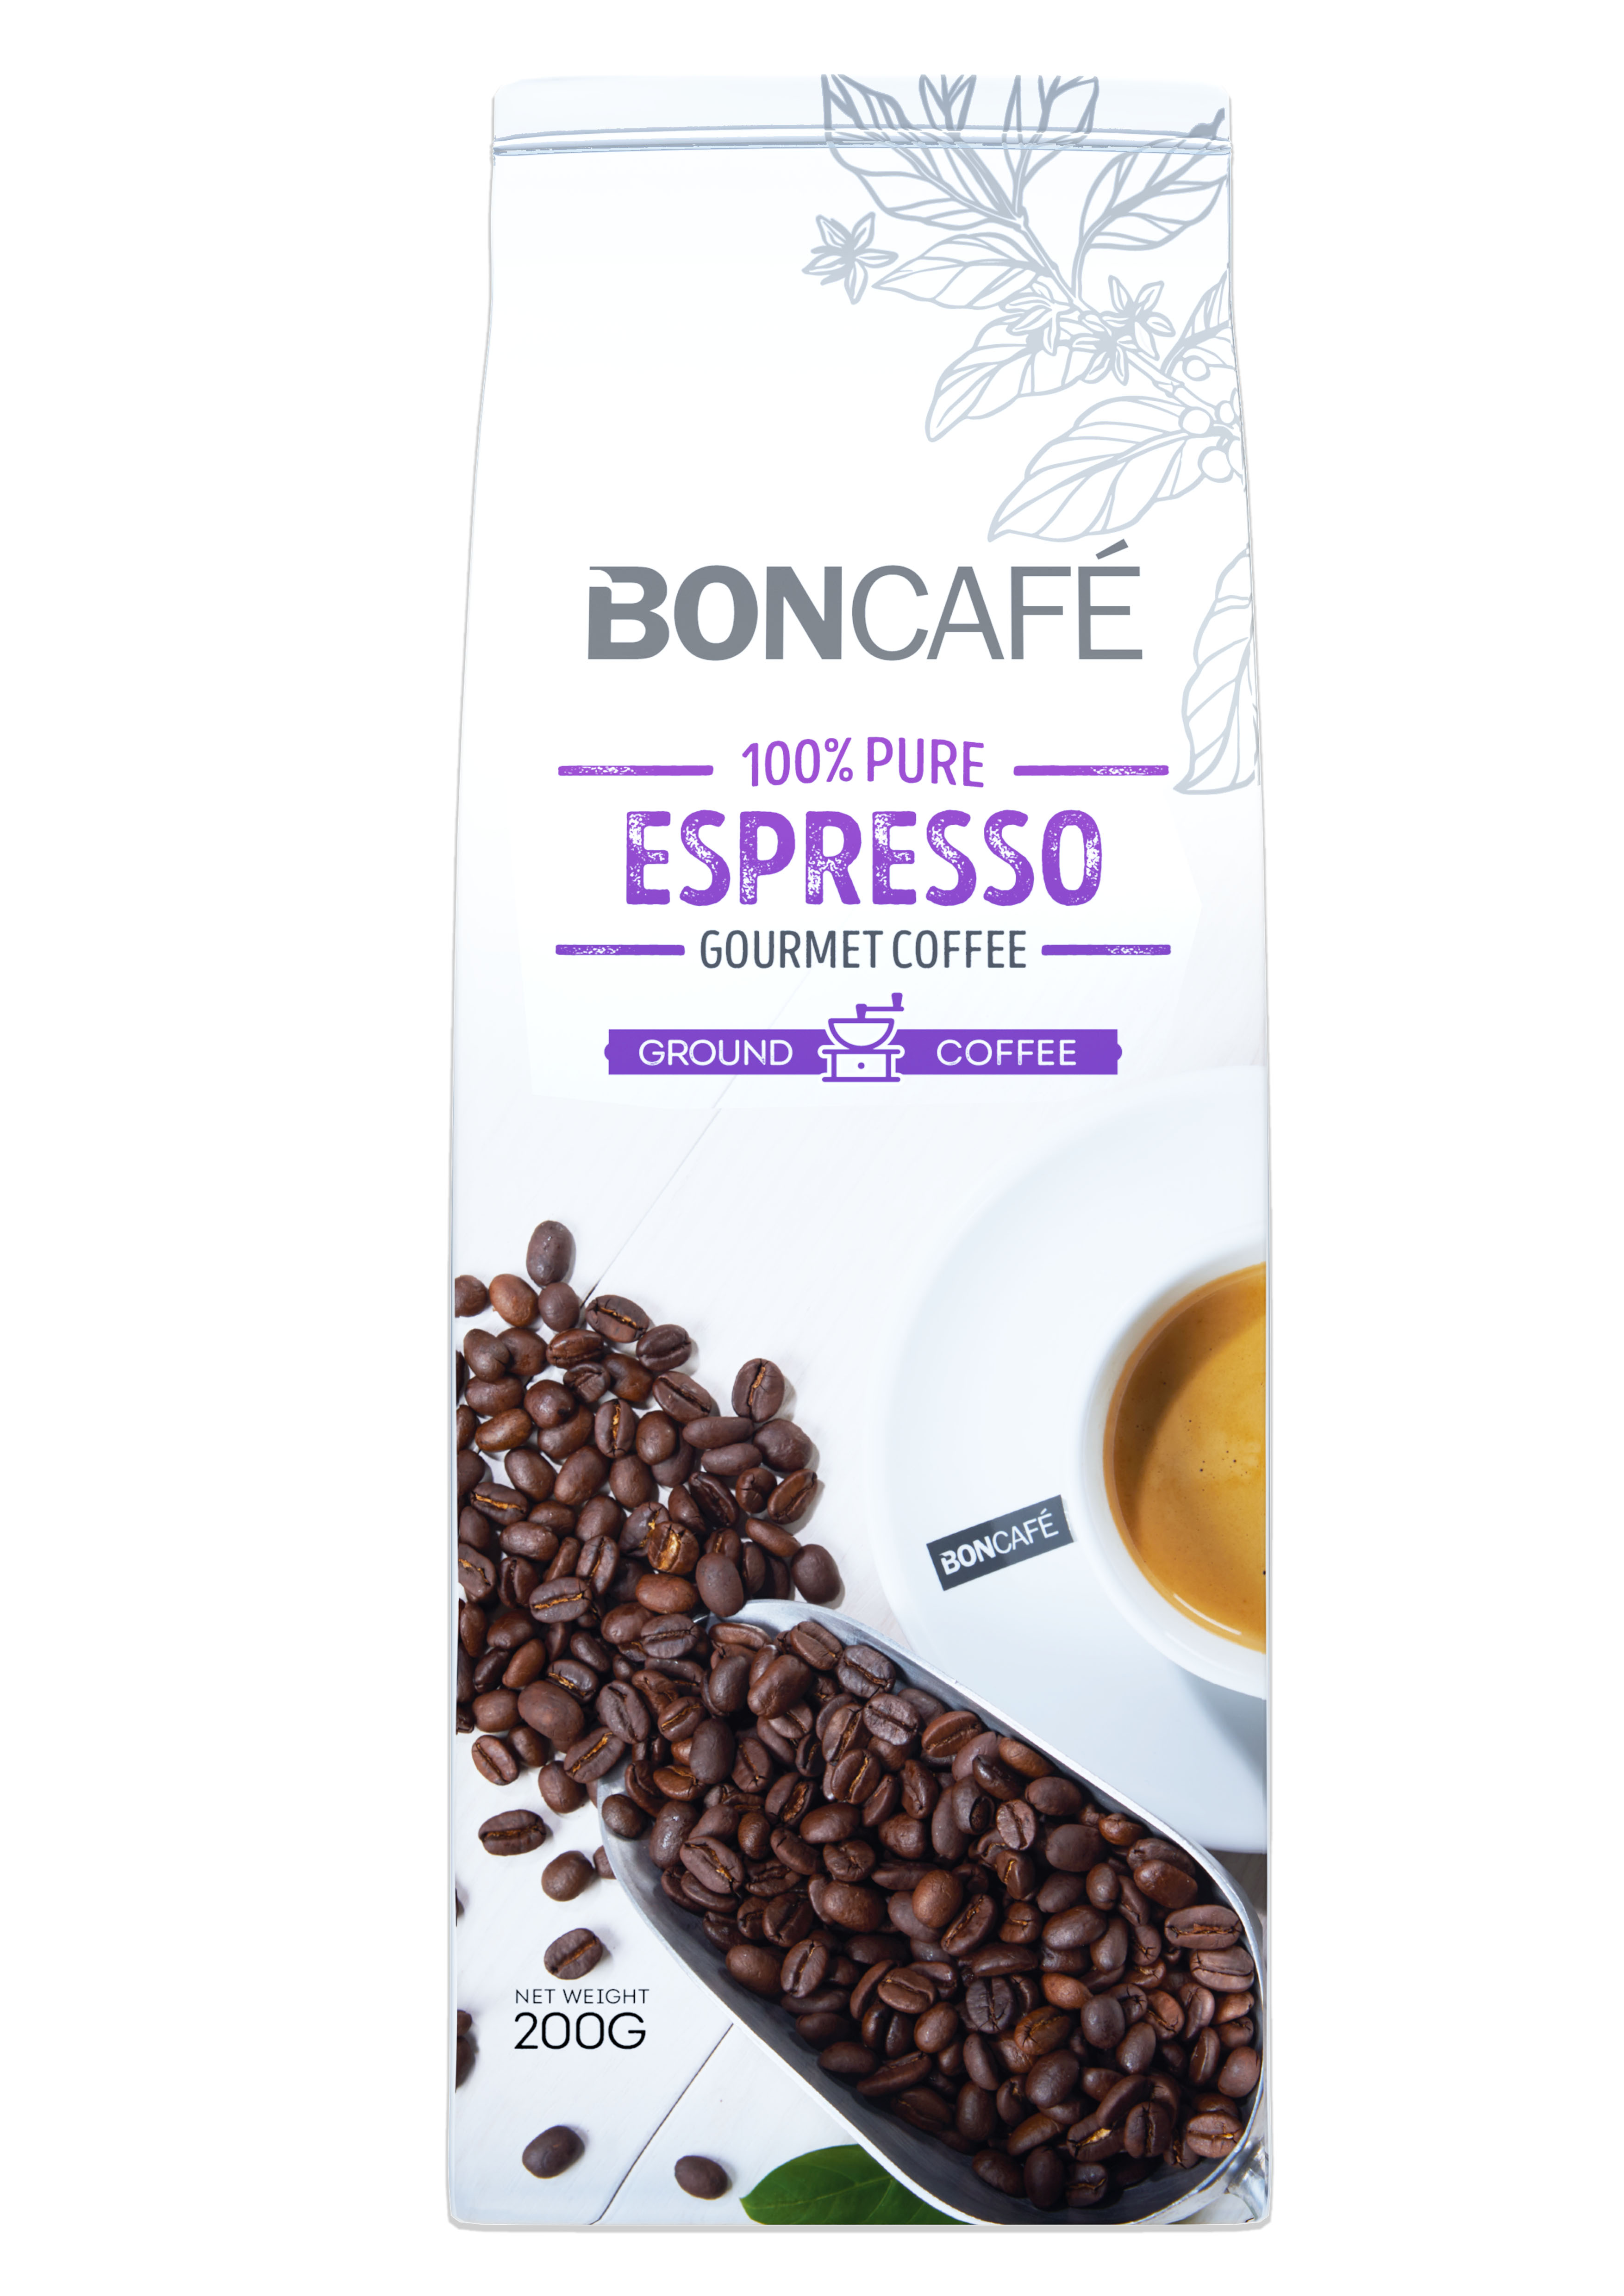 BONCAFÉ - GOURMET COLLECTION COFFEE BEAN: ESPRESSO BLEND